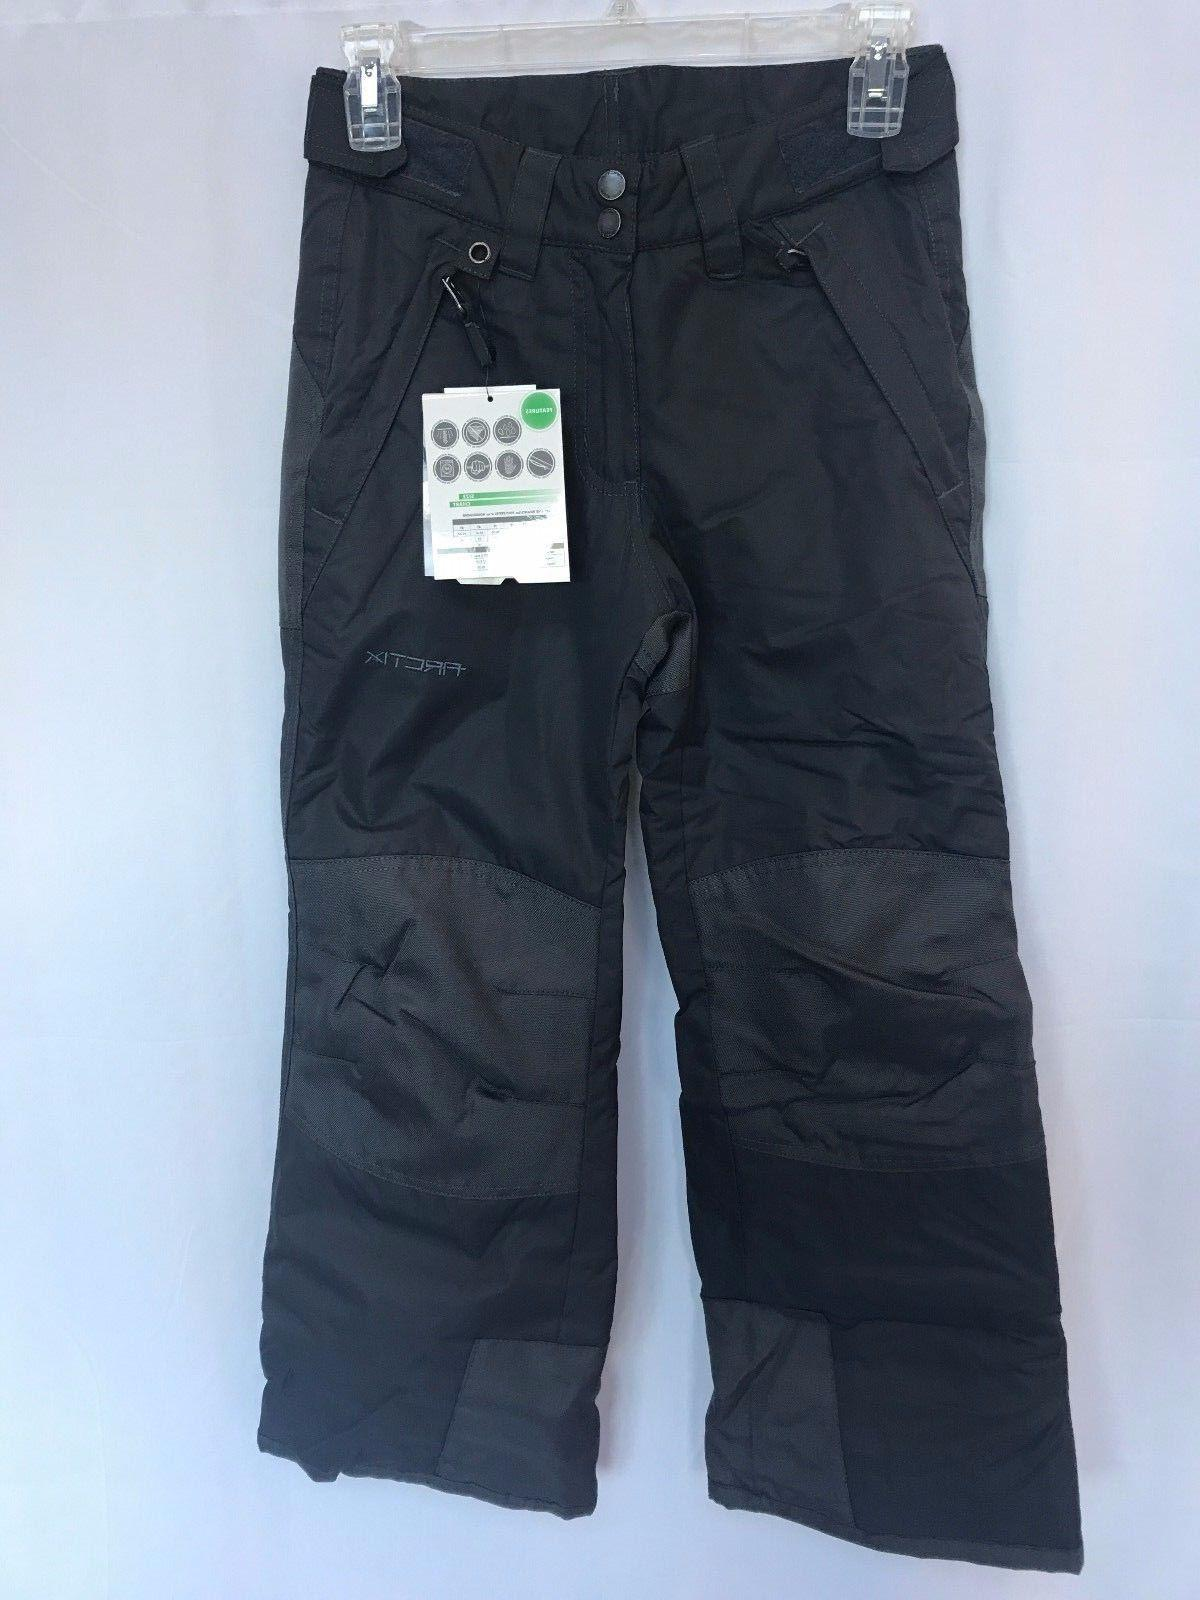 Arctix Youth Reinforced Insulated Water-Resistant Ski Pants